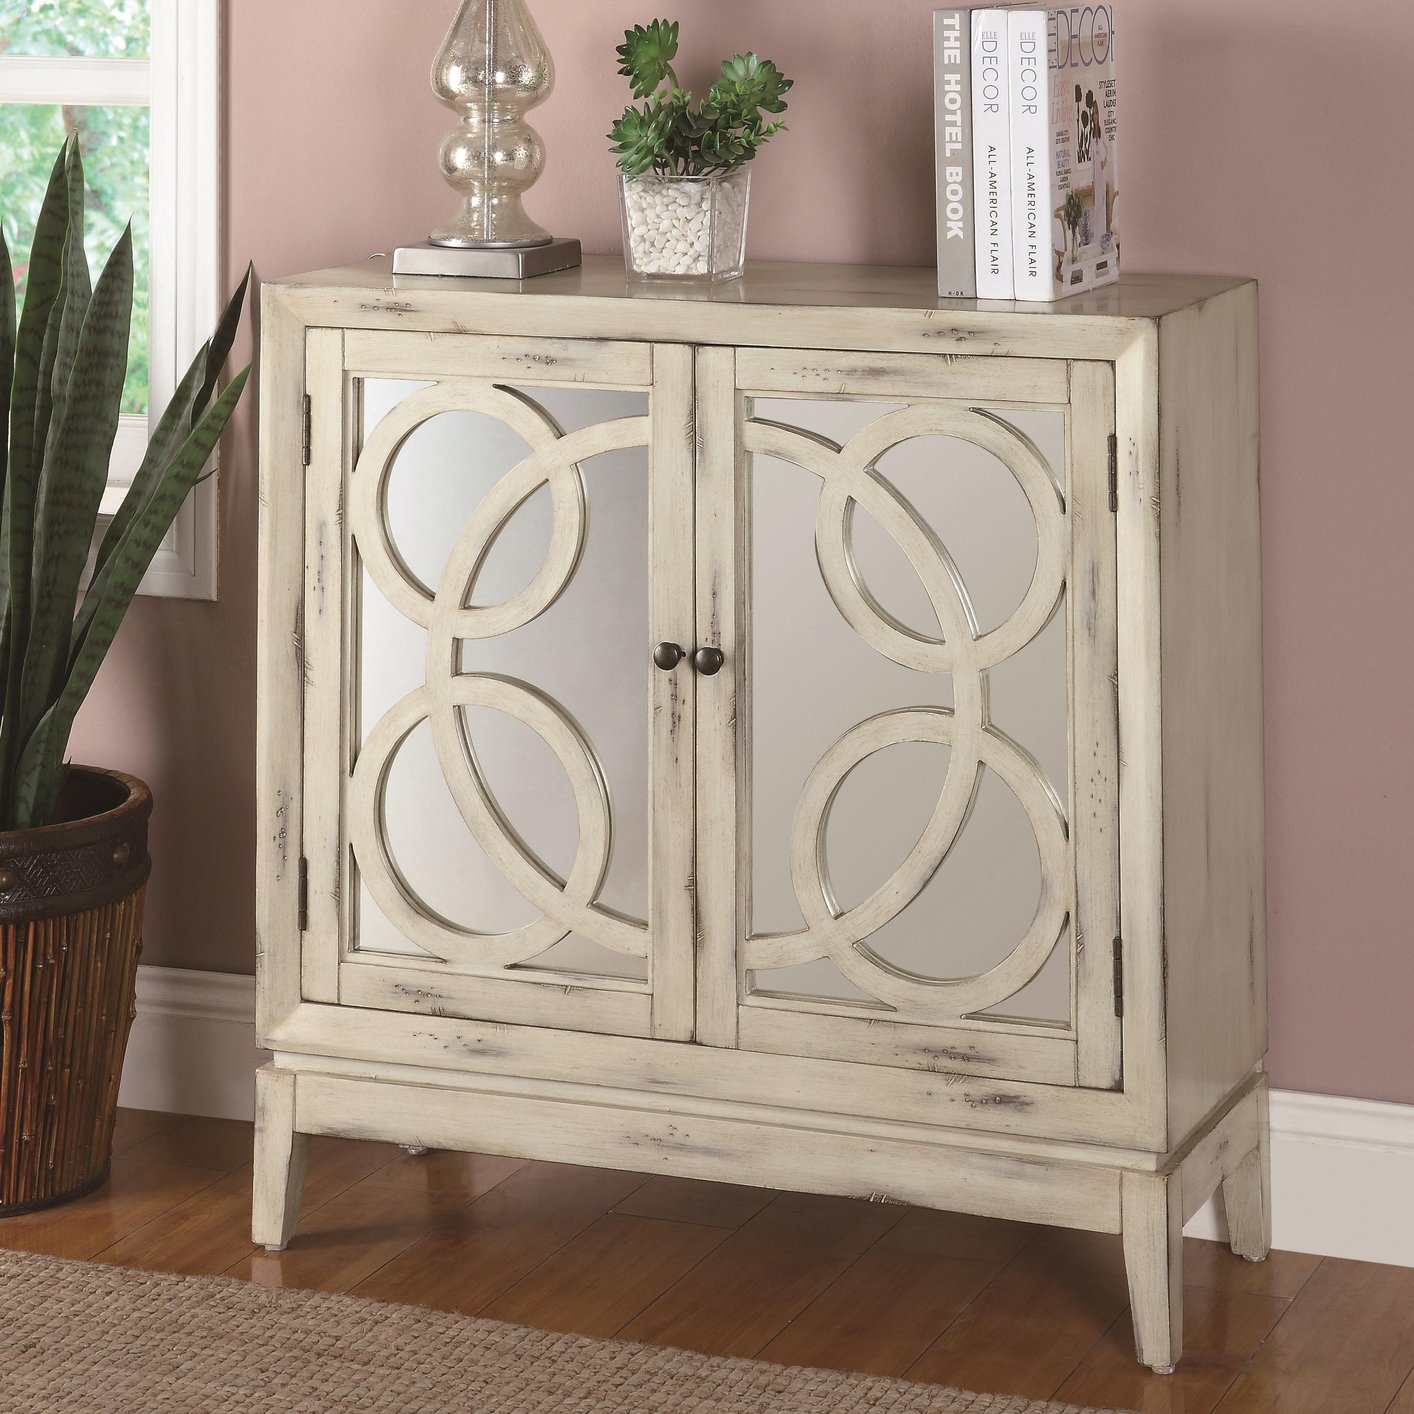 Merveilleux White Glass Accent Cabinet